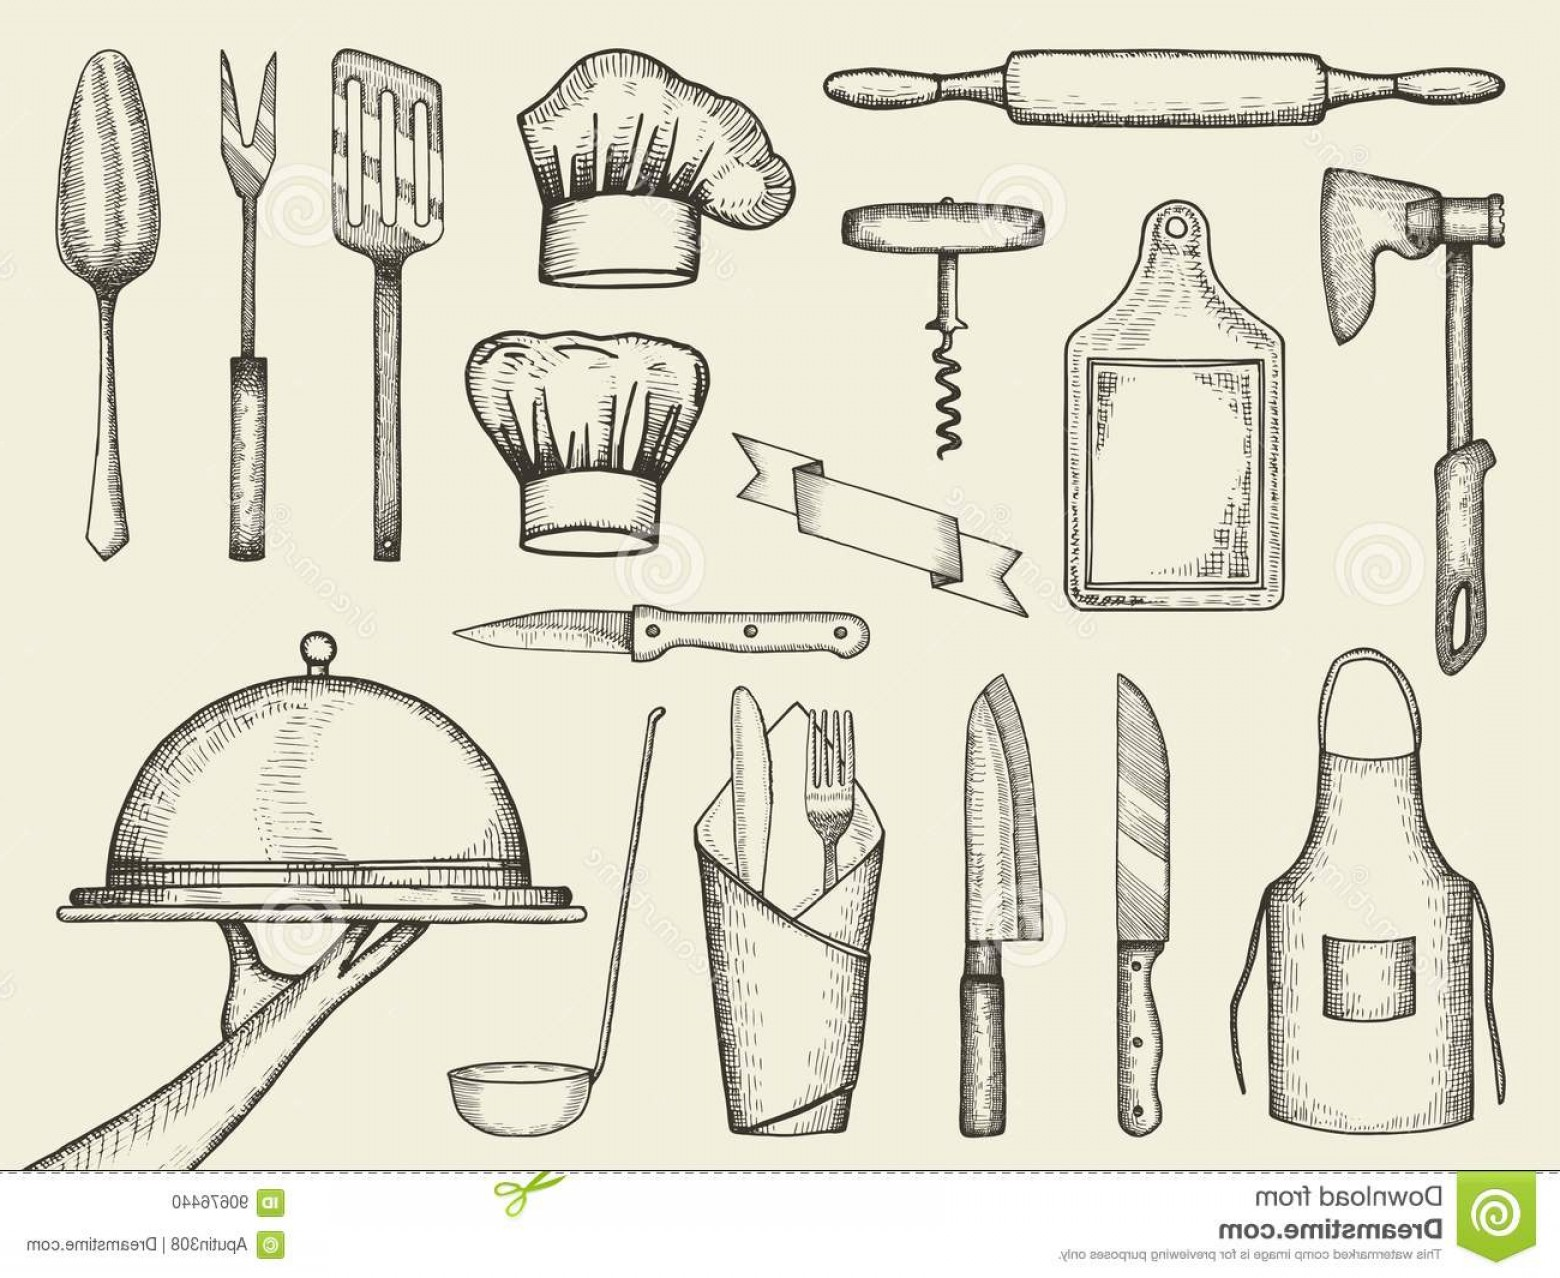 Vector Vintage Kitchen: Stock Illustration Kitchen Accessories Vector Vintage Hand Drawings Isolated Image